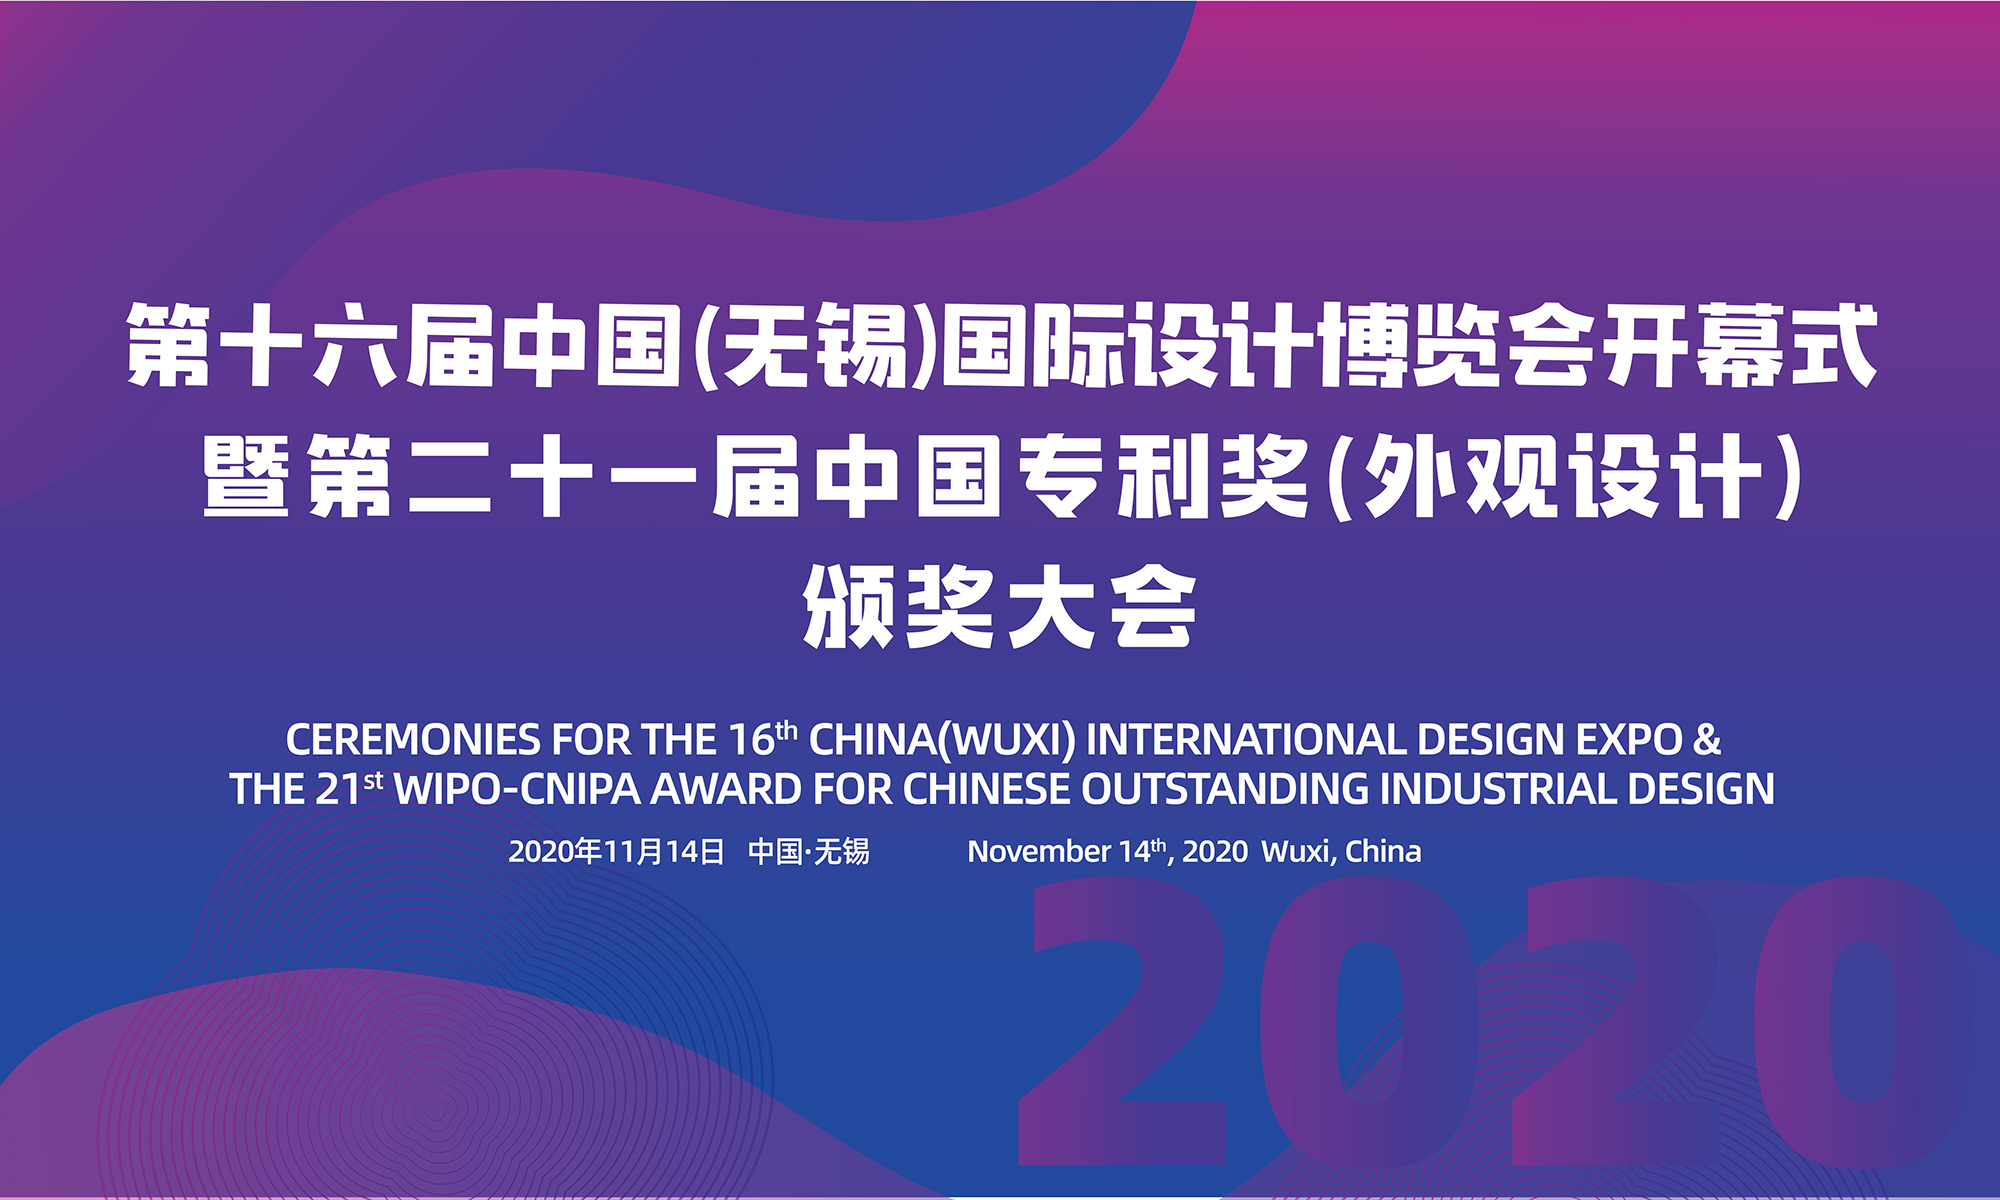 CERMONIES FOR THE 16th CHINA(WUXI)INTERNATIONAL DESIGN EXPO & THE 21st  WIPO-CNIPA AWARD FOR CHINESE OUTSTANDING INDUSTRIAL DESIGN